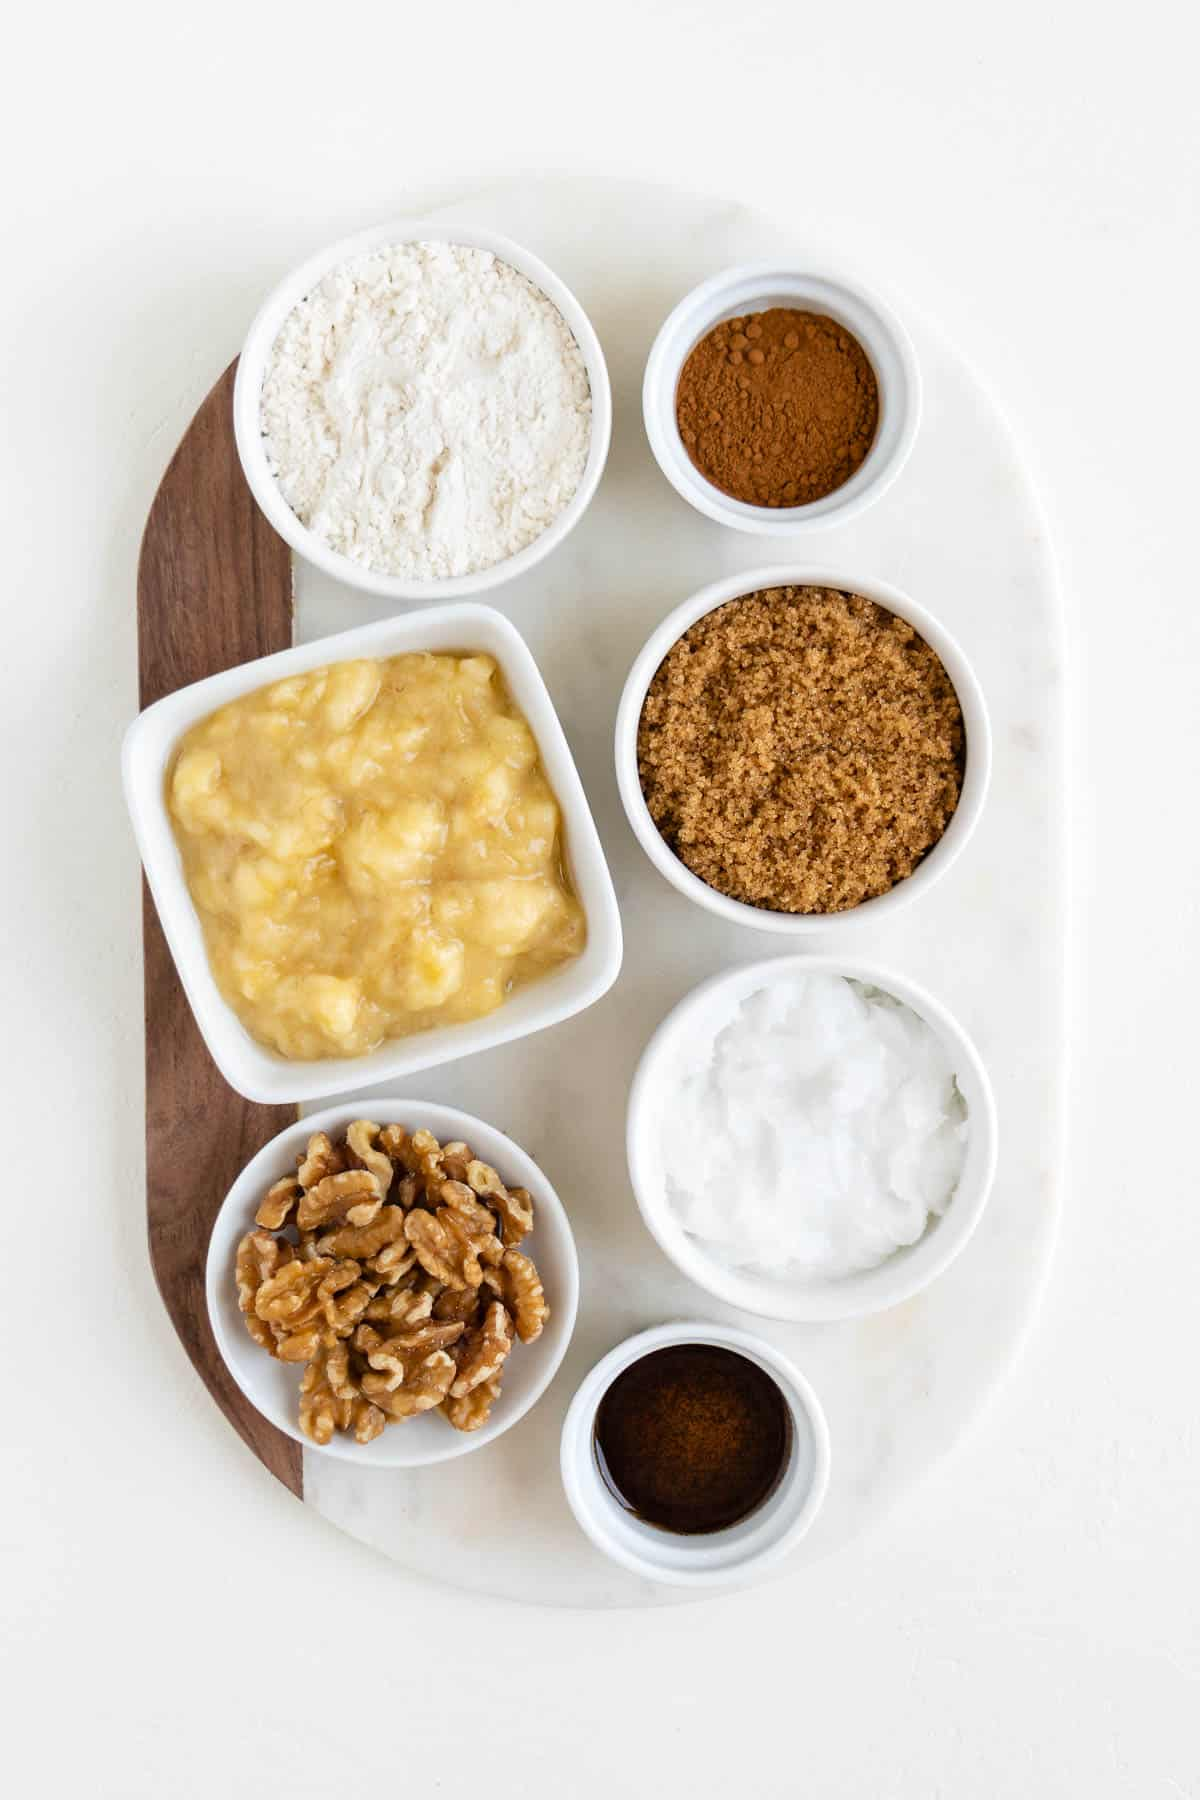 mashed bananas, brown sugar, walnuts, flour, cinnamon, and vanilla extract in white bowls on a marble board